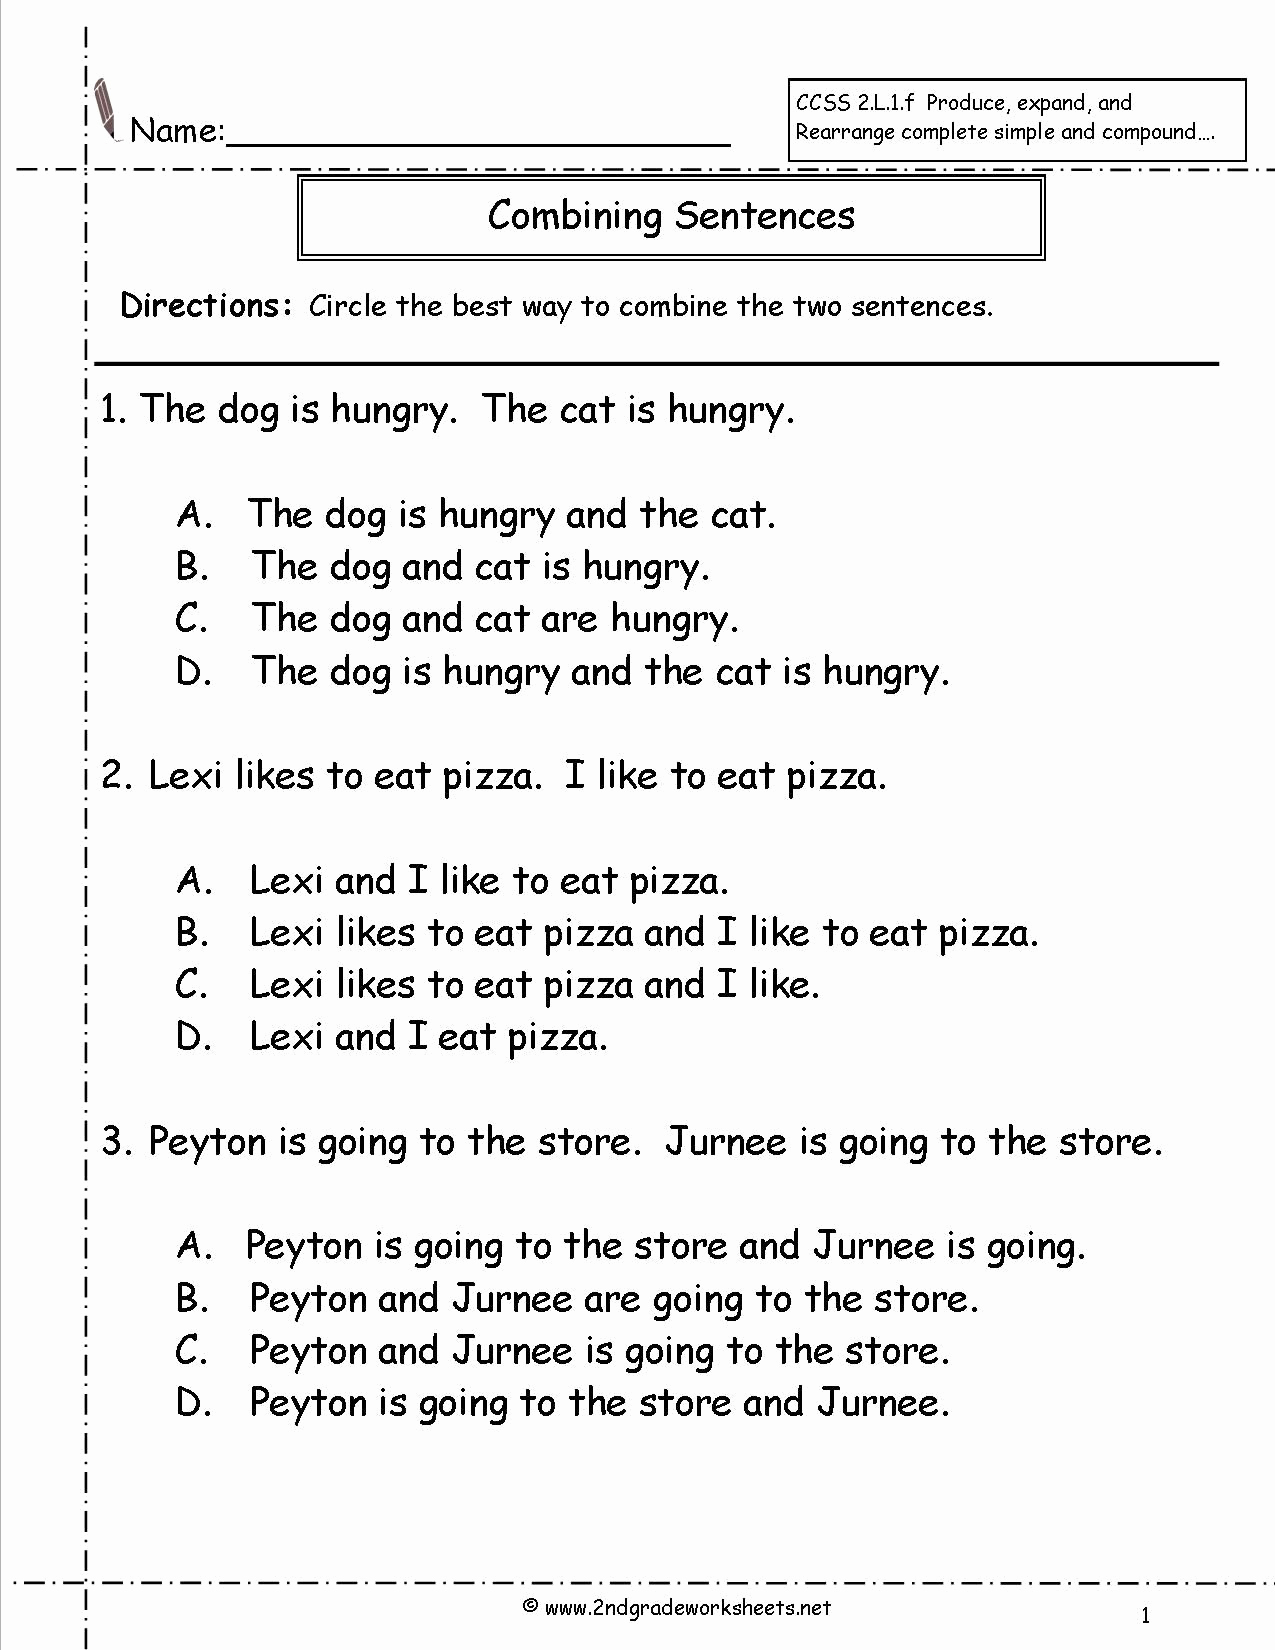 Topic Sentence Worksheets 5th Grade Inspirational 20 topic Sentence Worksheets 5th Grade